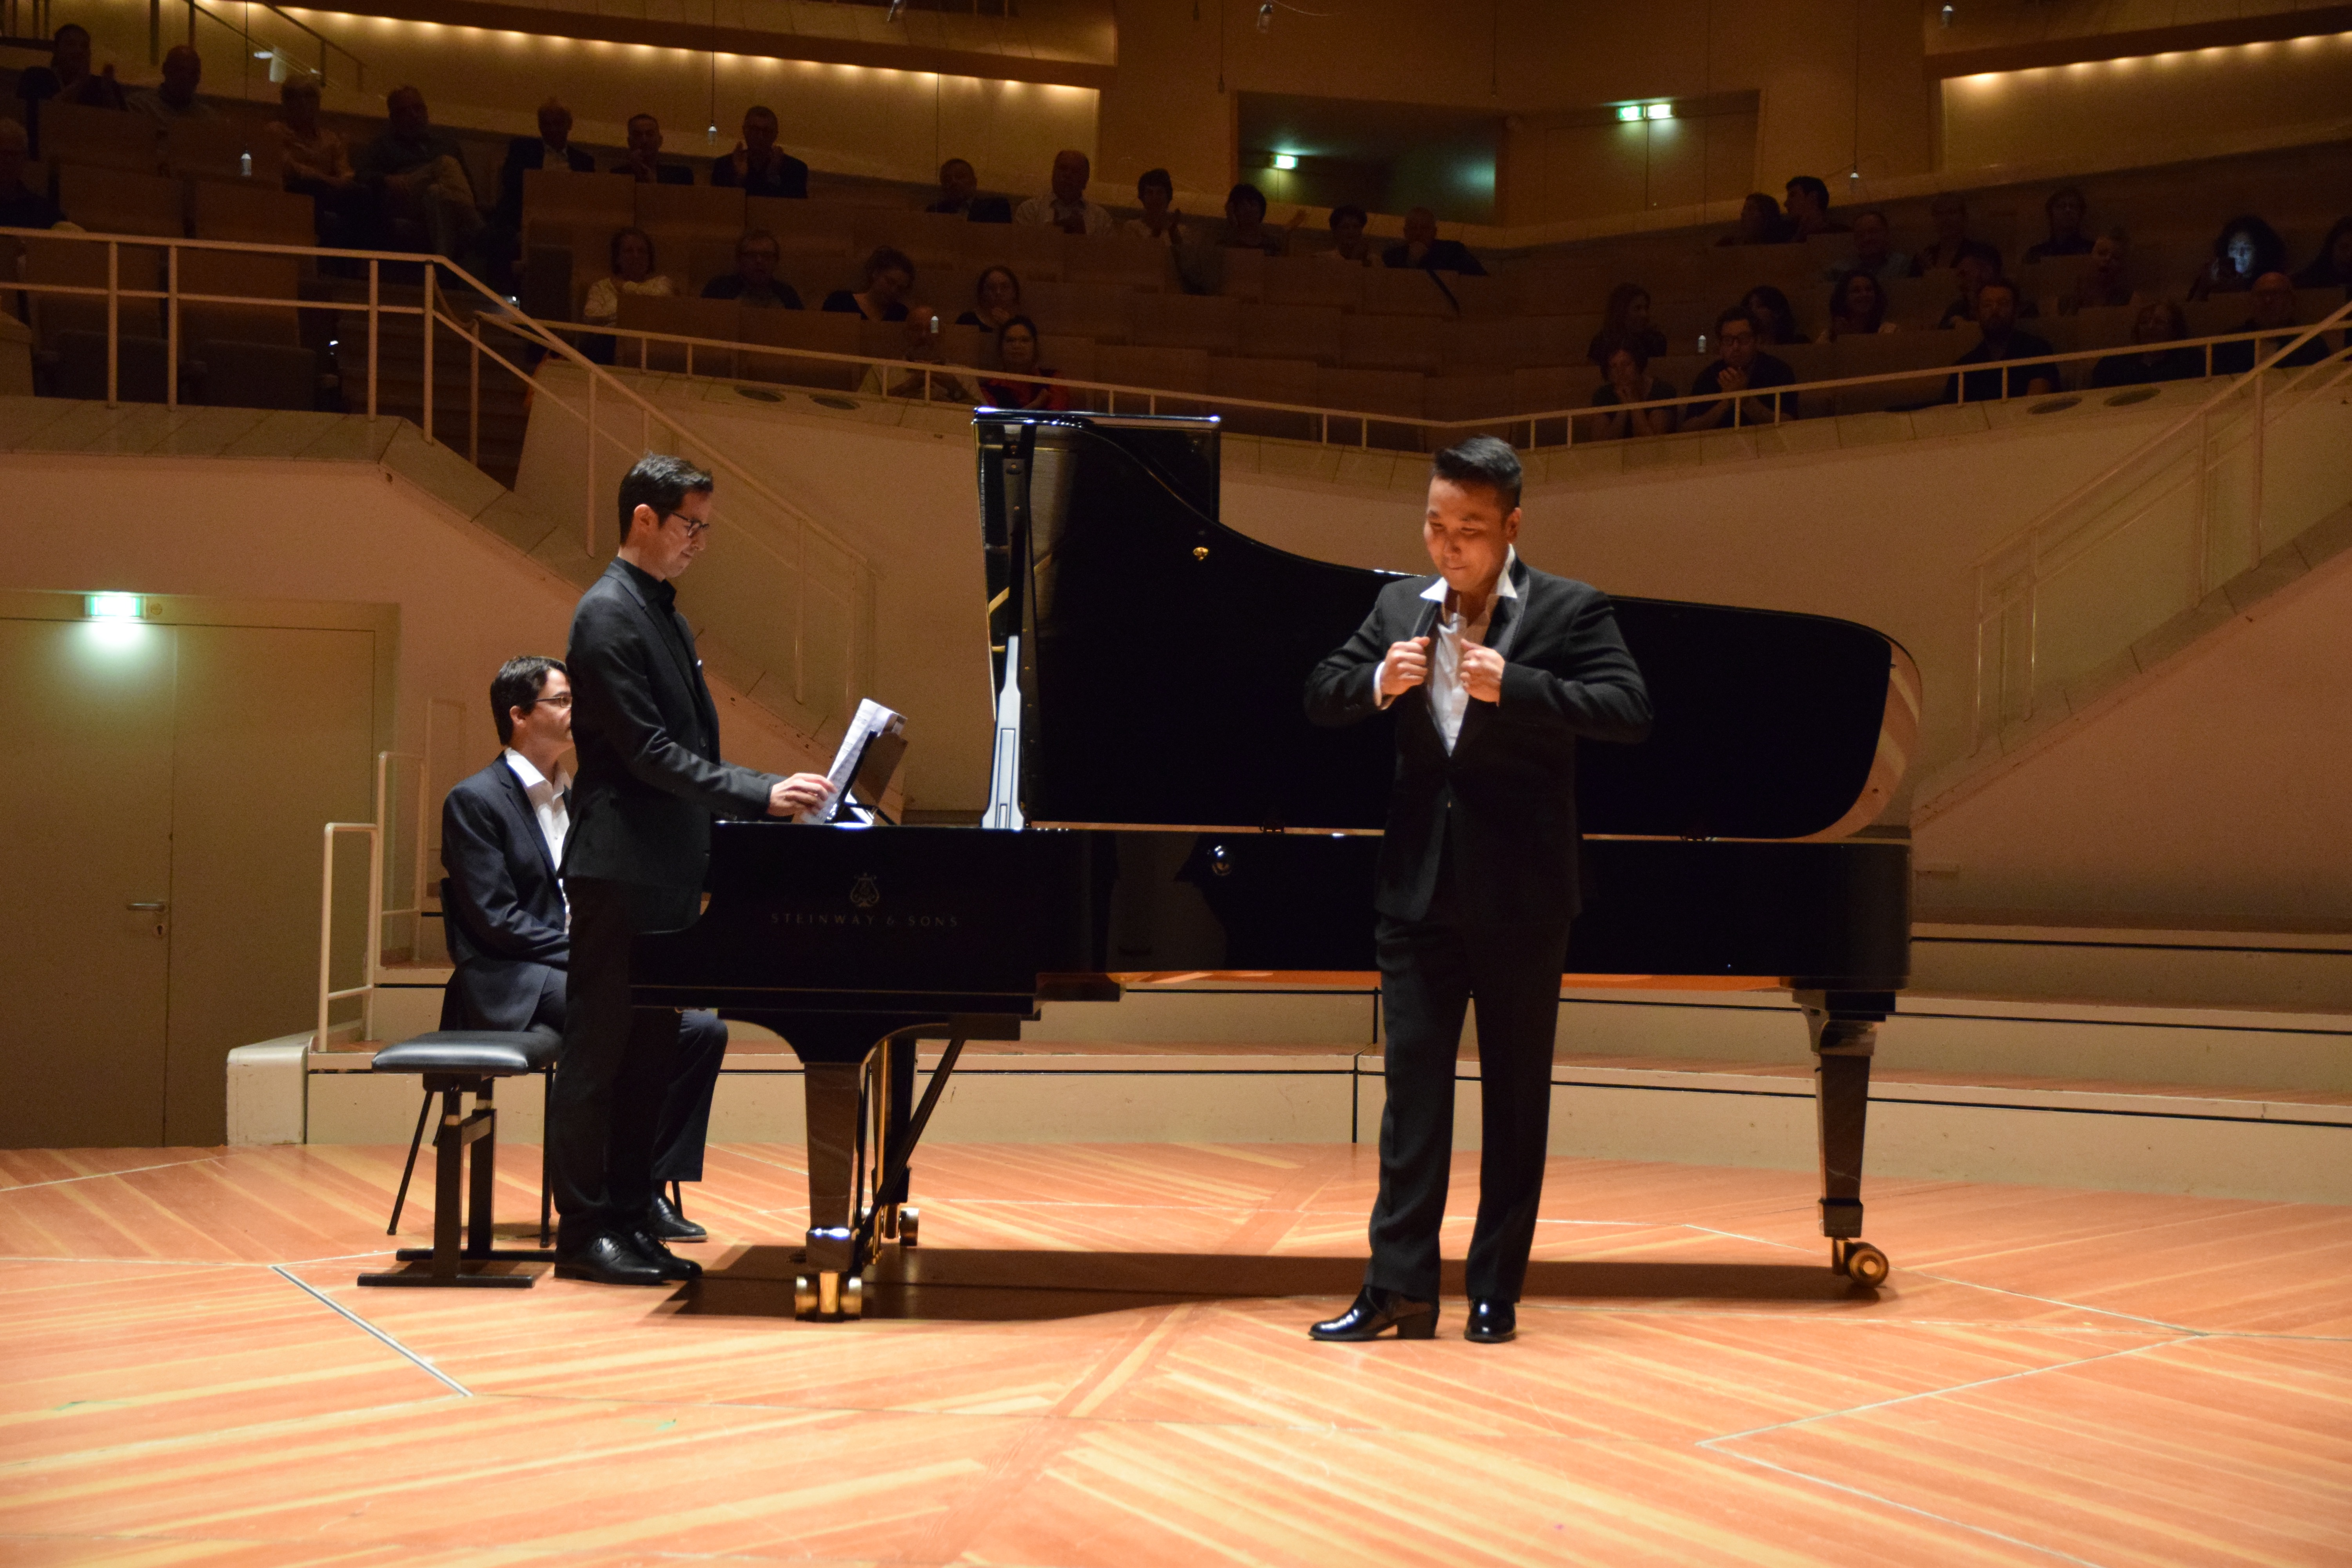 berliner music competition 25